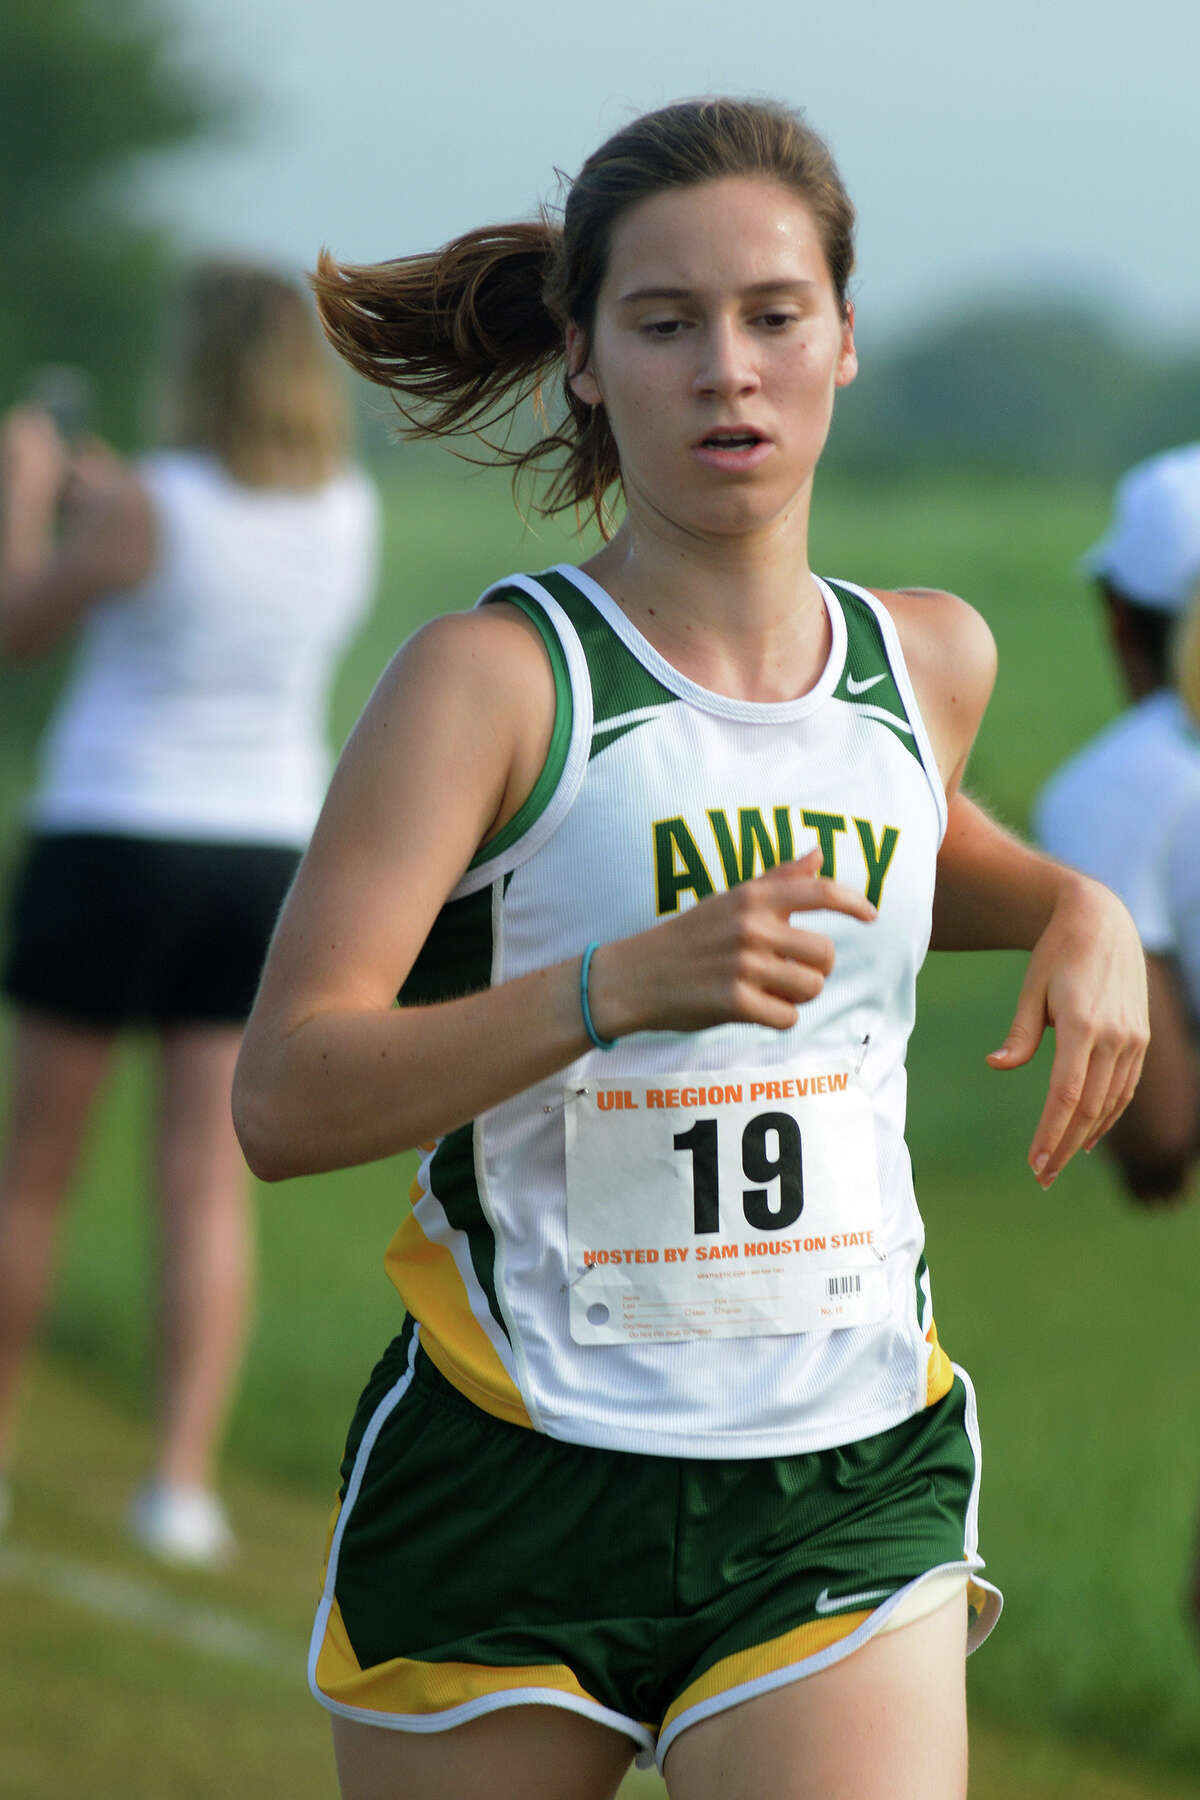 Awty International senior Carrie McIntyre (19) competes in the Varsity Girls Elite 5000 Meter race at the UIL Region III Cross Country Meet at Kate Barr-Ross Park in Huntsville on Sept. 10, 2016. (Photo by Jerry Baker/Freelance)